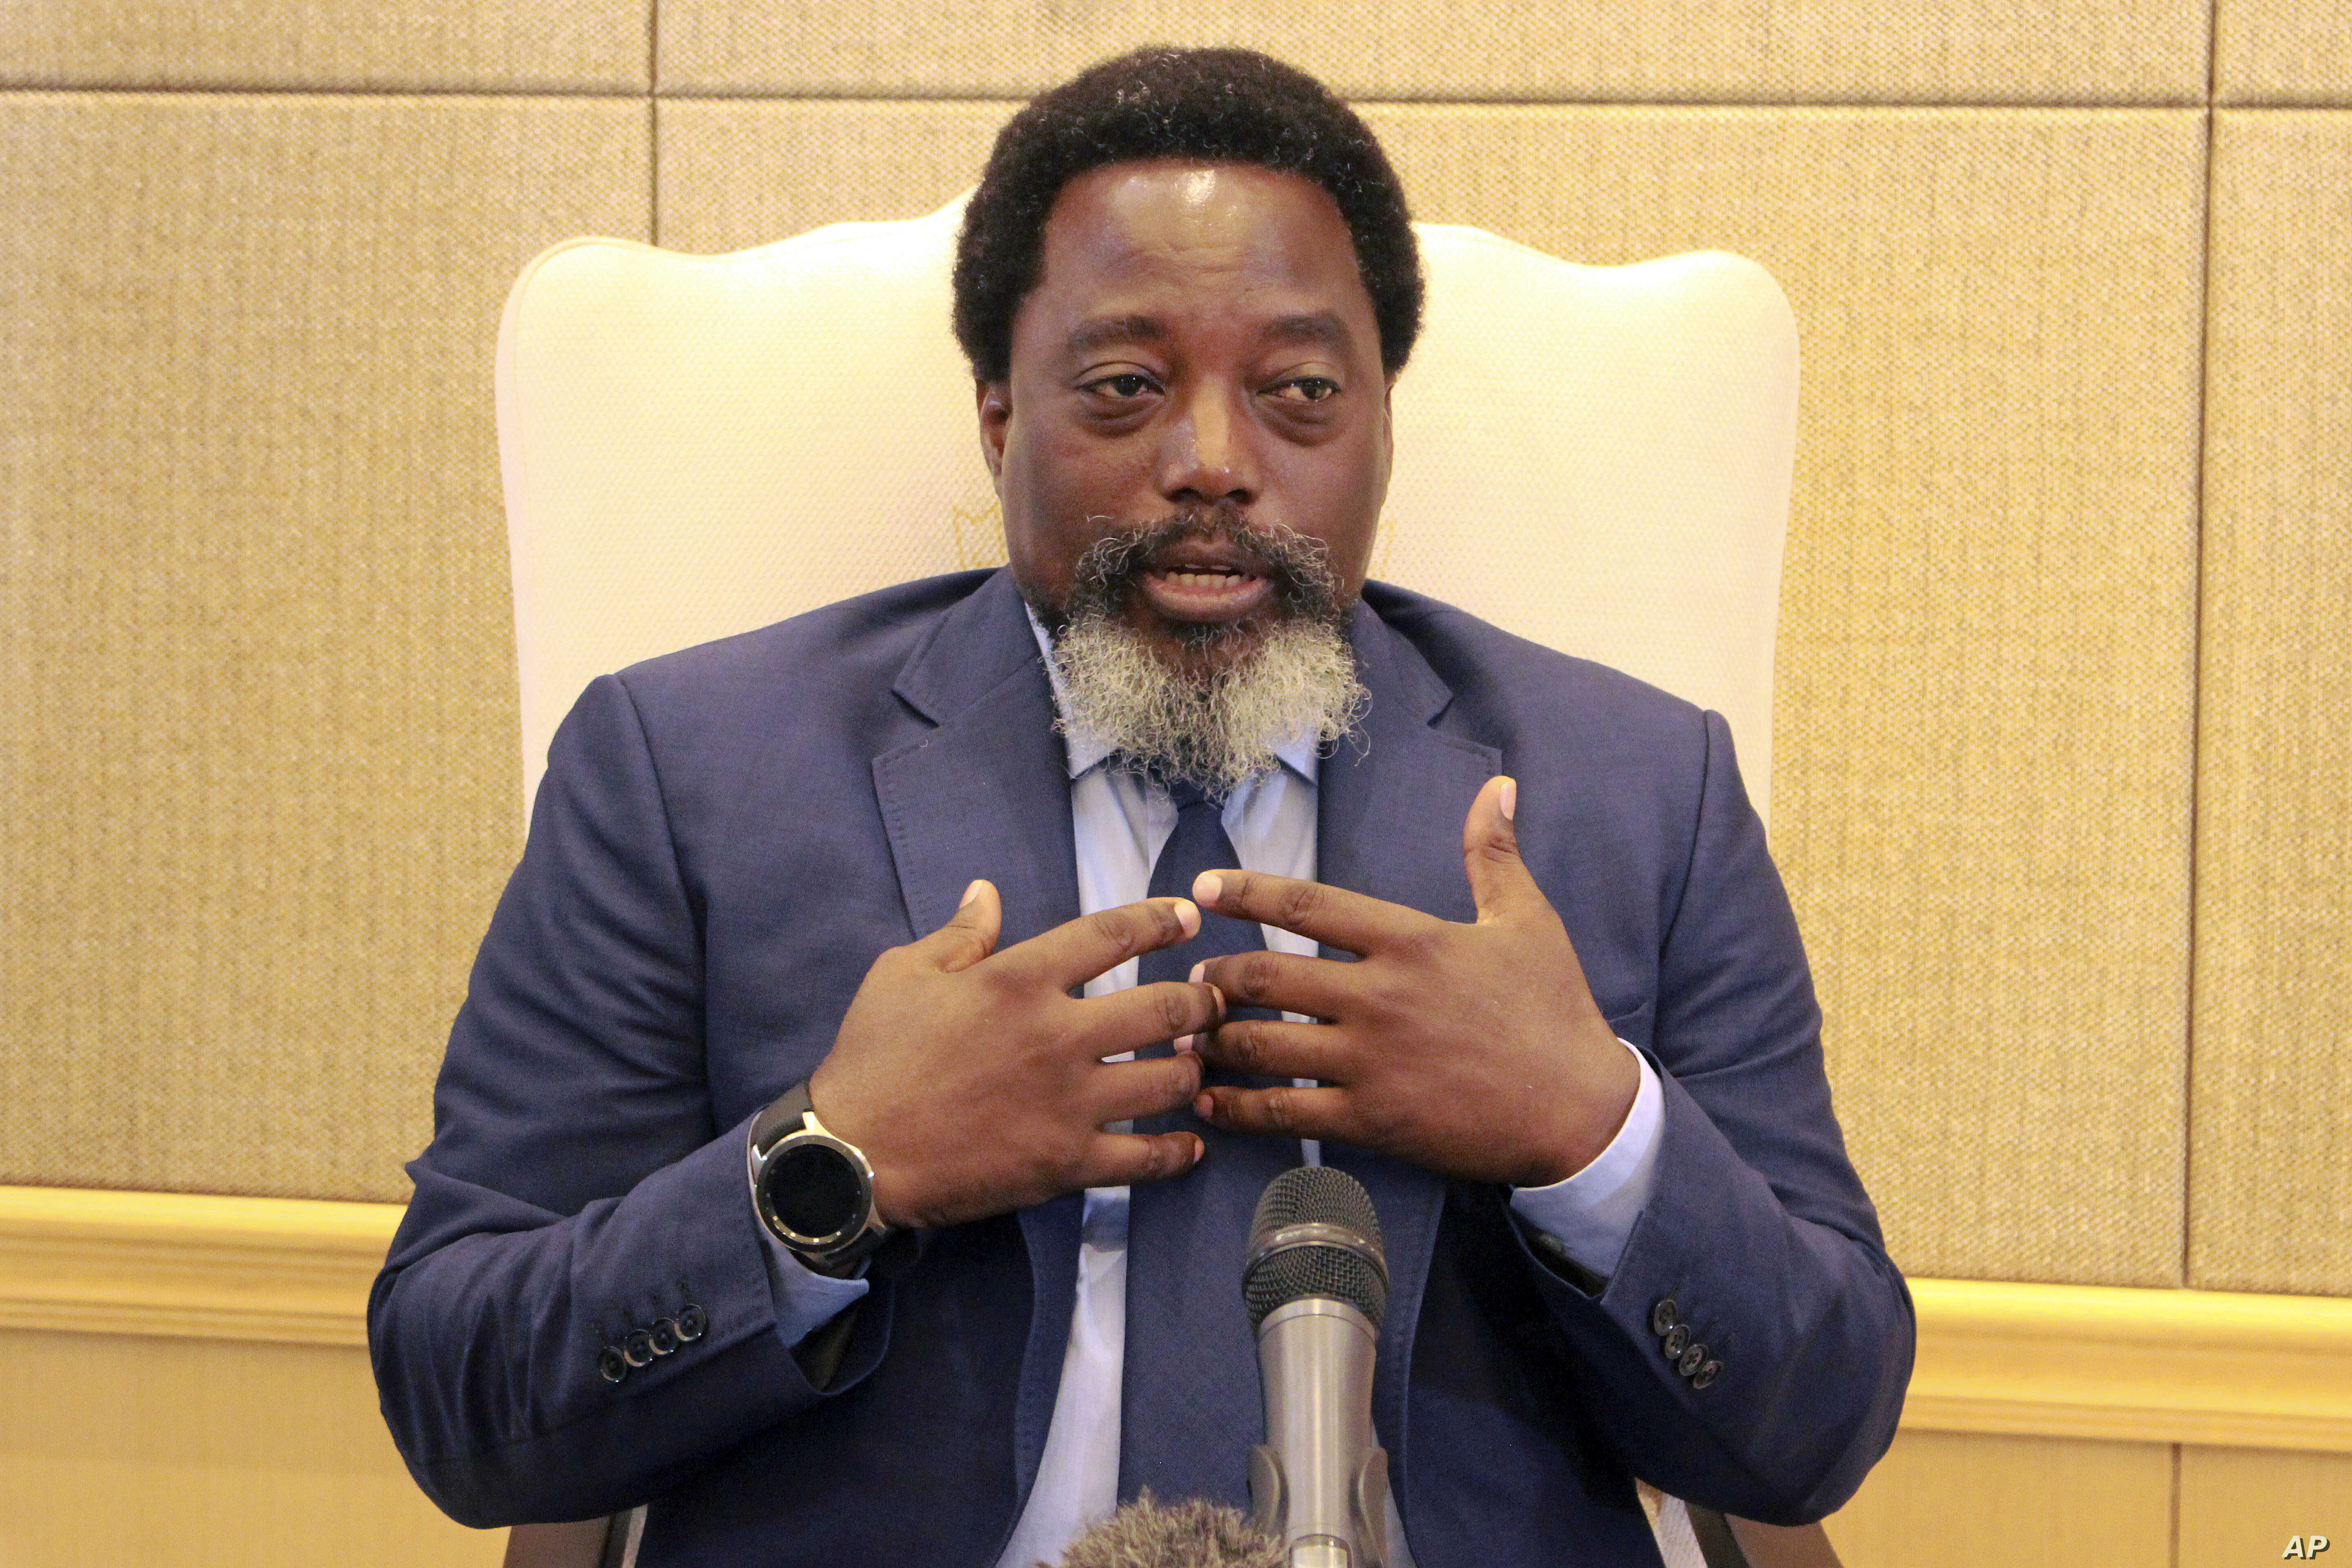 Democratic Republic of Congo's President Joseph Kabila speaks during an interview by the Associated Press at the Nation's Palace in Kinshasa, Dec. 9, 2018.